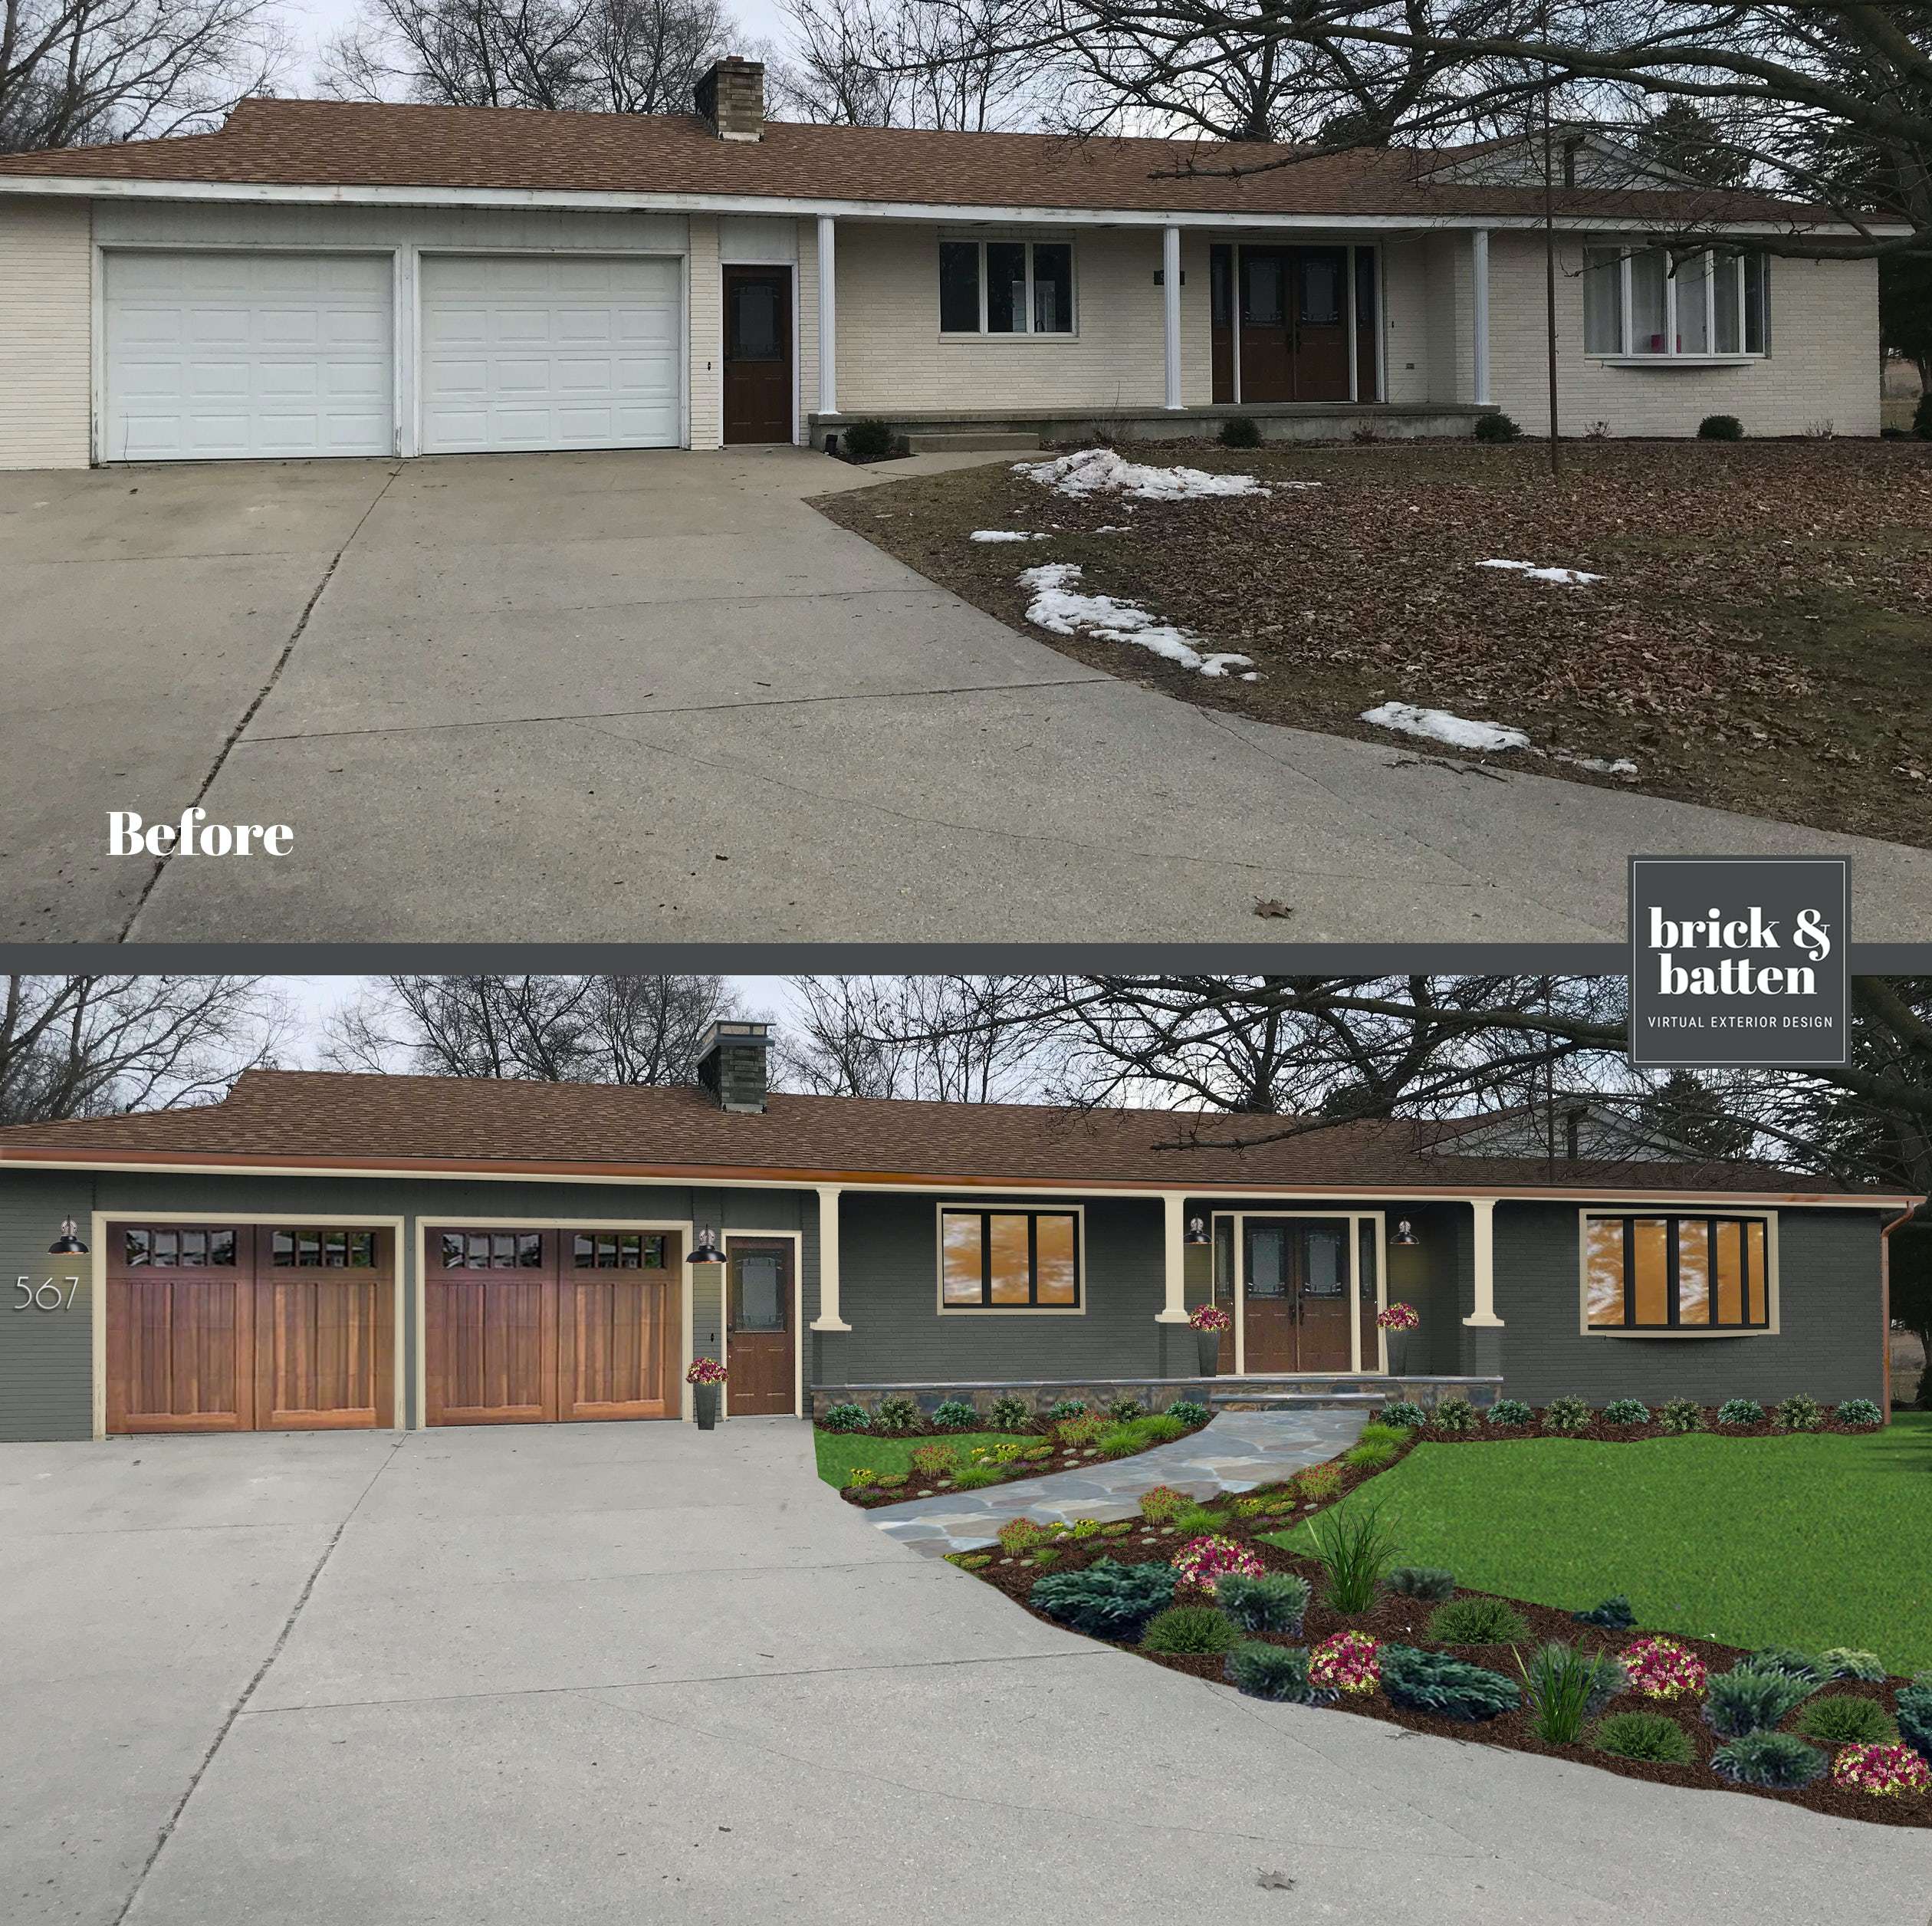 RANCH Homes Before & After Makeover | Blog | brick&batten on ranch house exterior remodel, ranch house exterior paint color ideas, ranch style home exterior design, exterior home house design, modern house exterior design, craftsman style homes design,